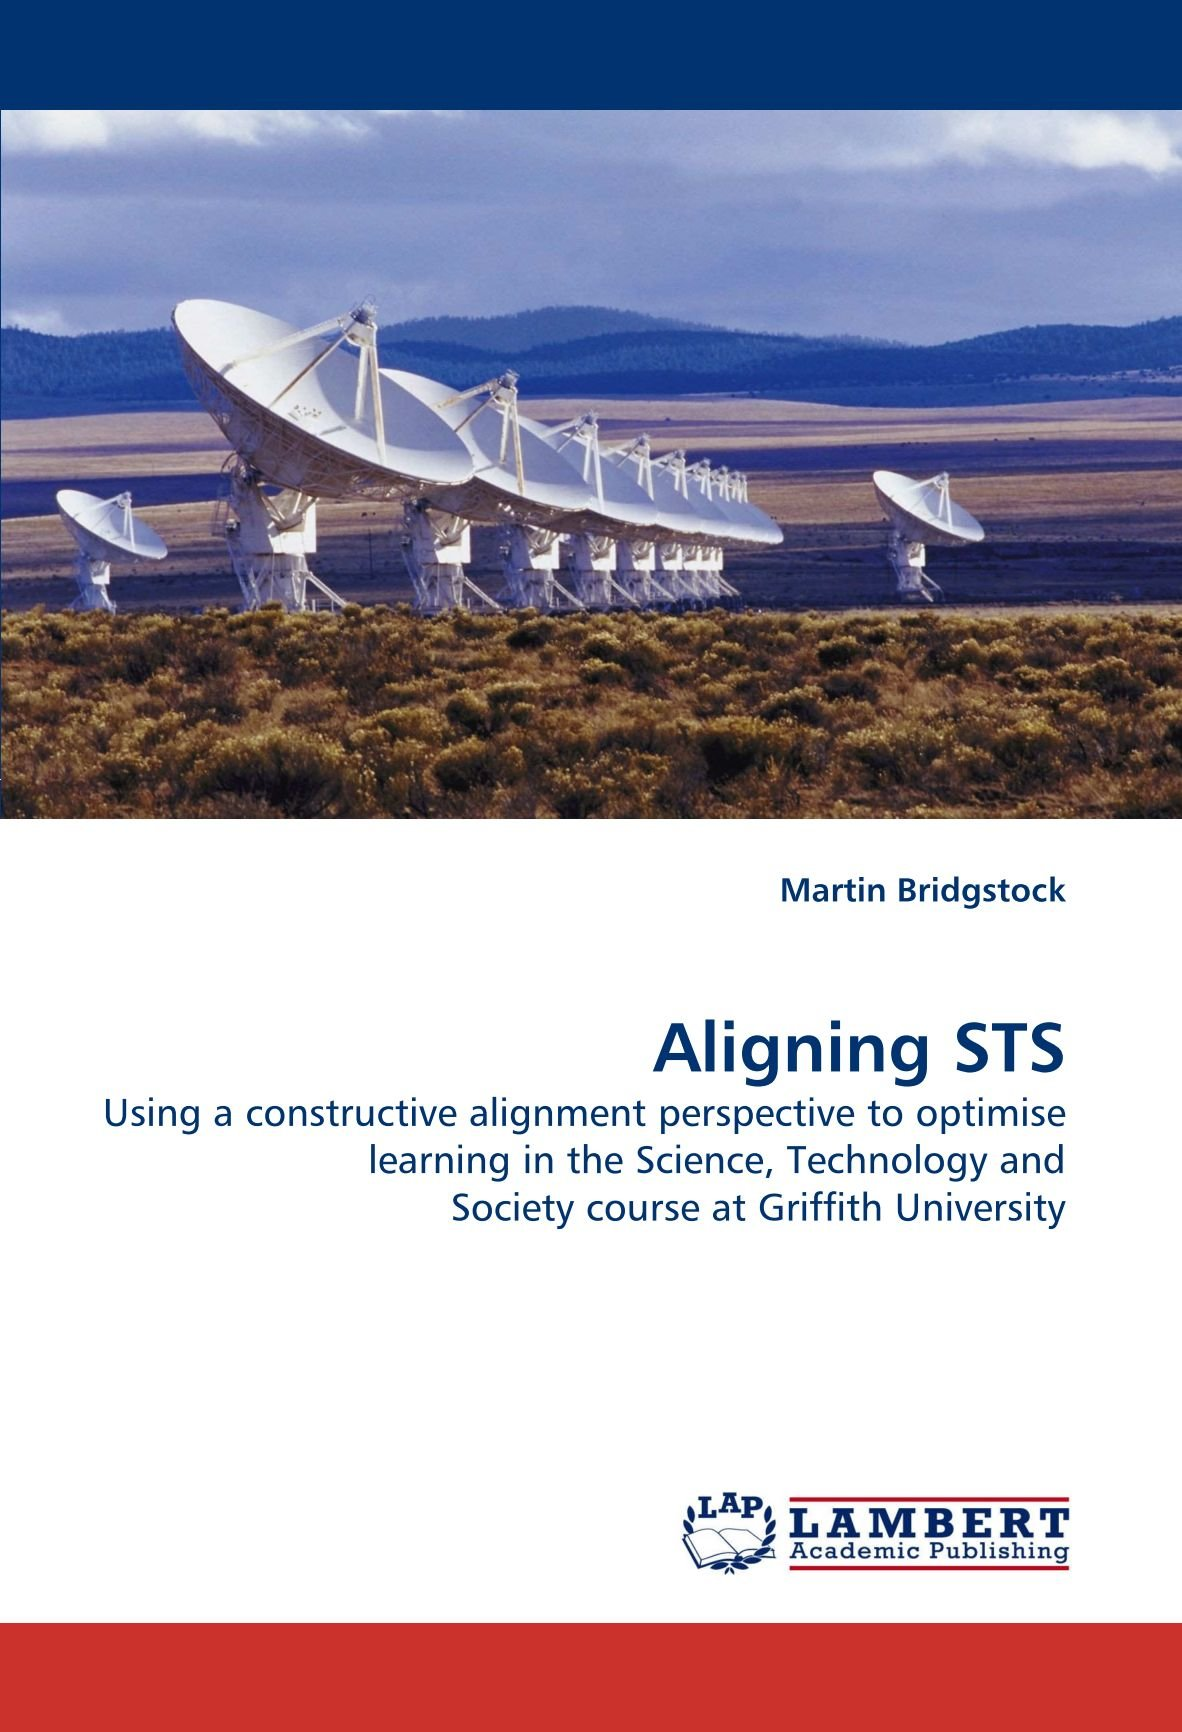 Download Aligning STS: Using a constructive alignment perspective to optimise learning in the Science, Technology and Society course at Griffith University ebook